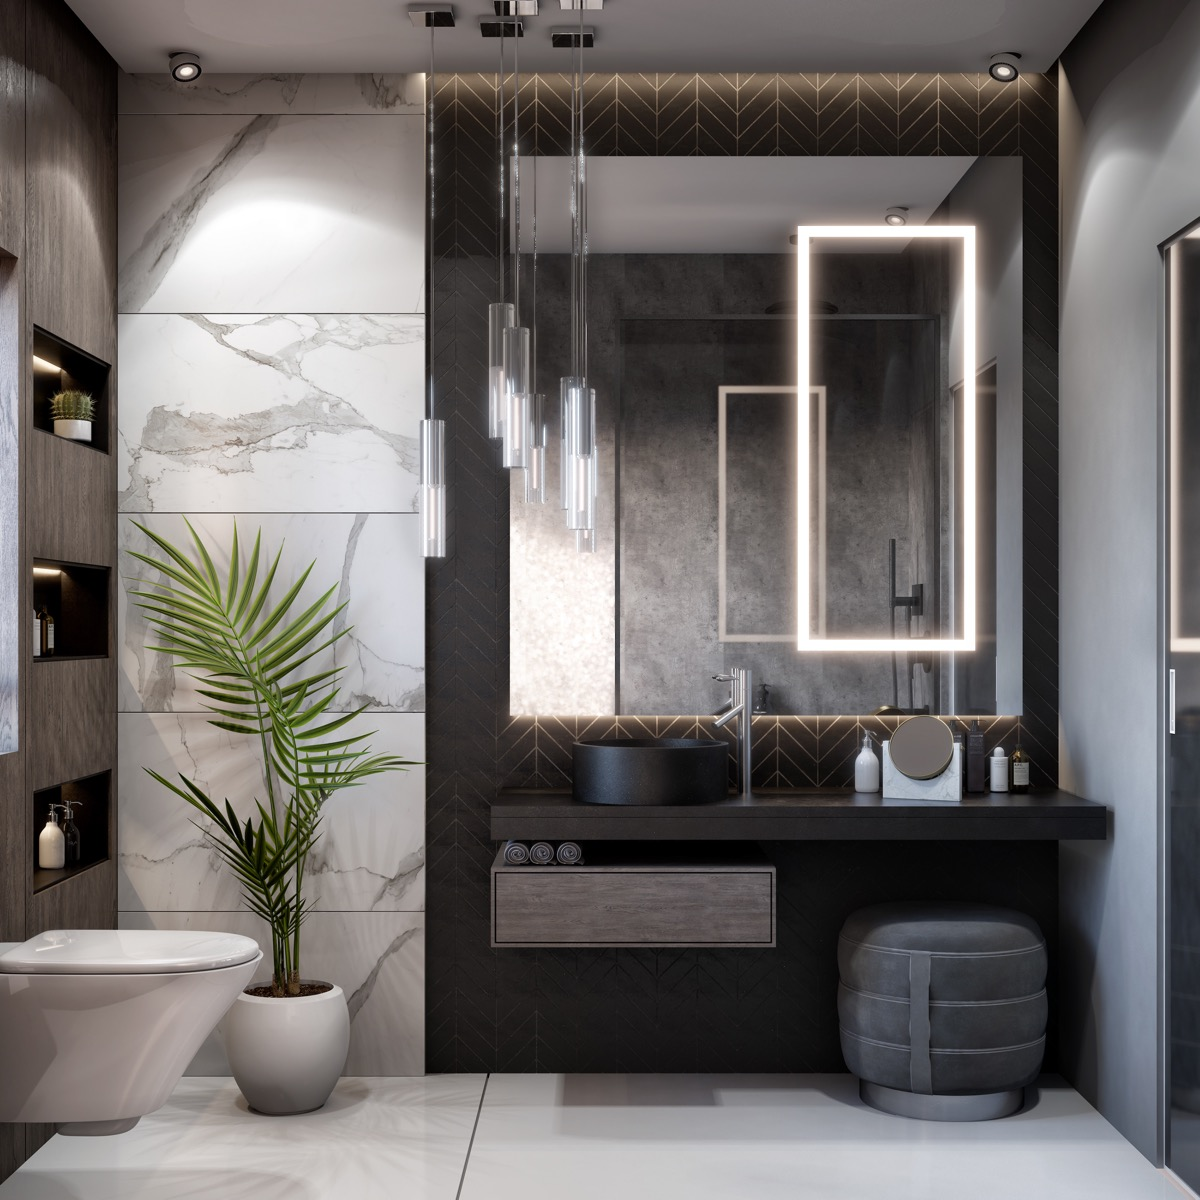 Bathroom Ideas: 51 Modern Bathroom Design Ideas Plus Tips On How To